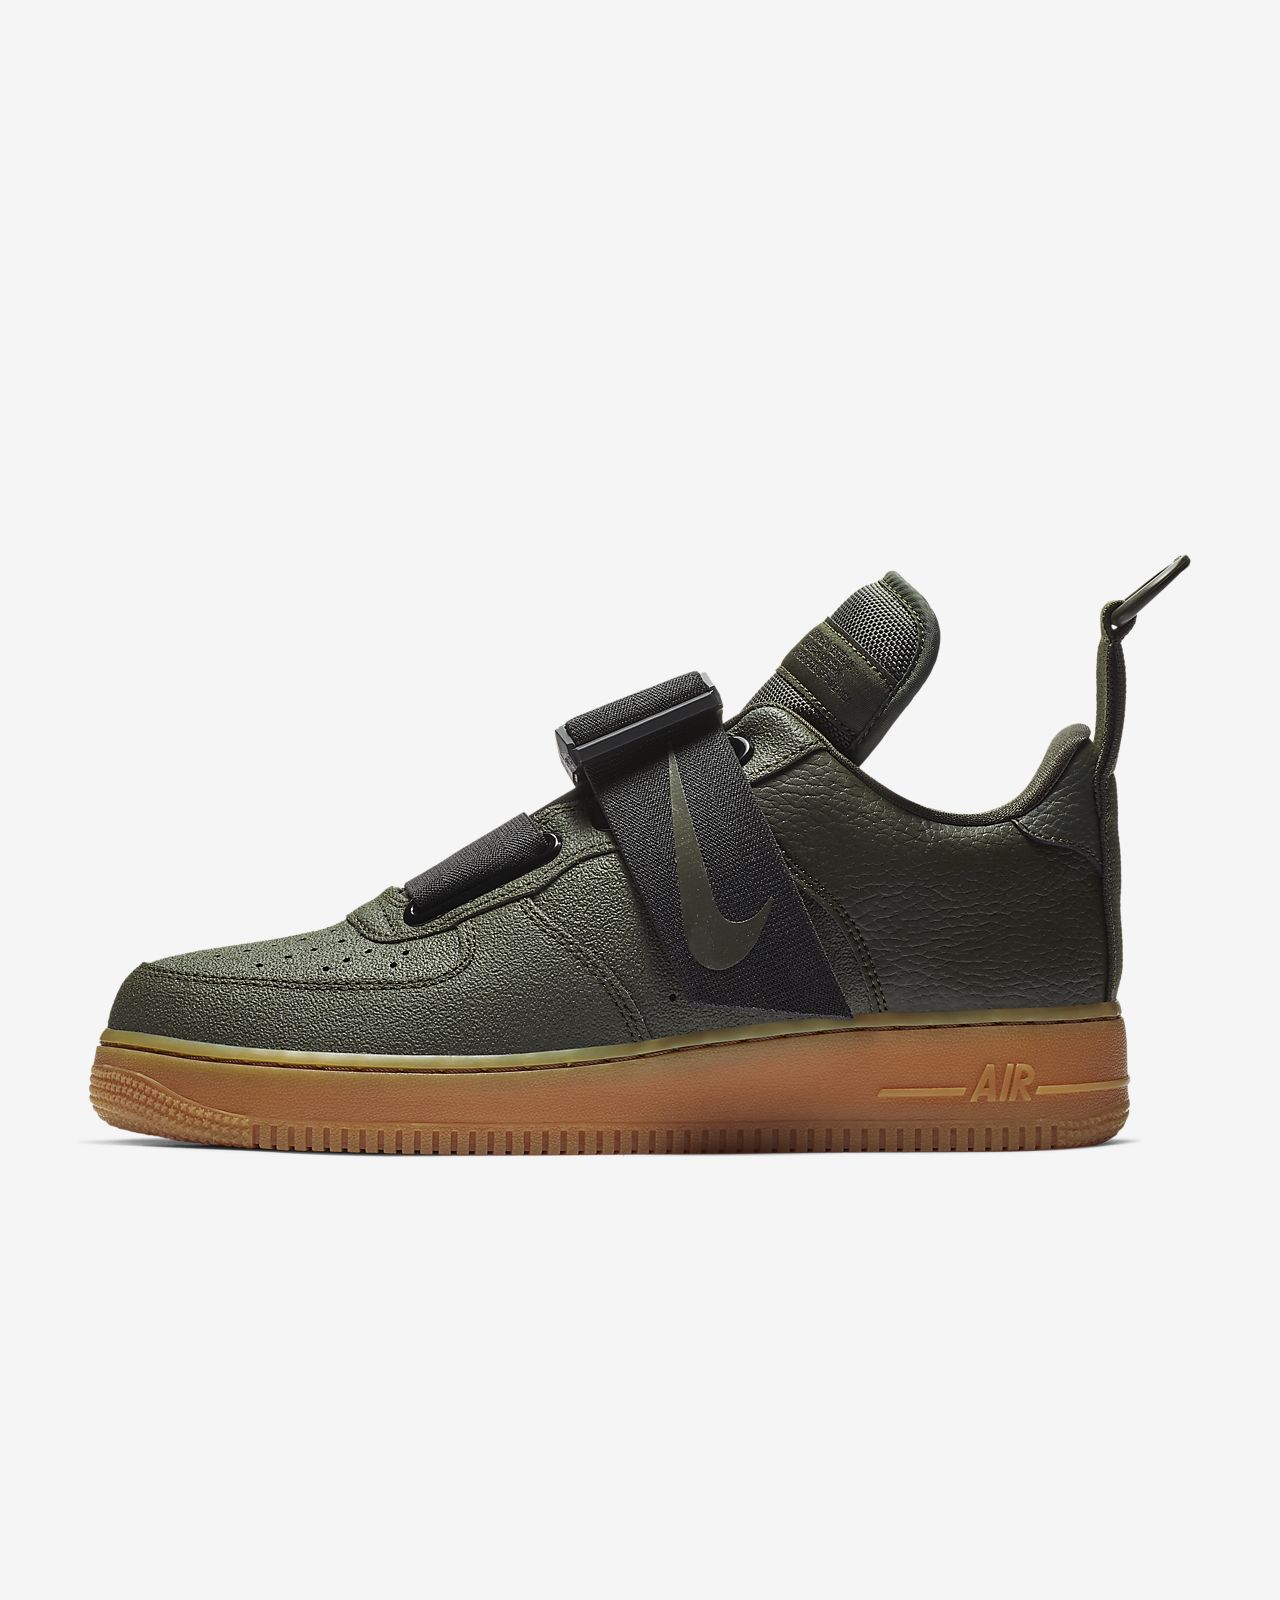 official photos 90765 5eb63 ... Sko Nike Air Force 1 Utility för män